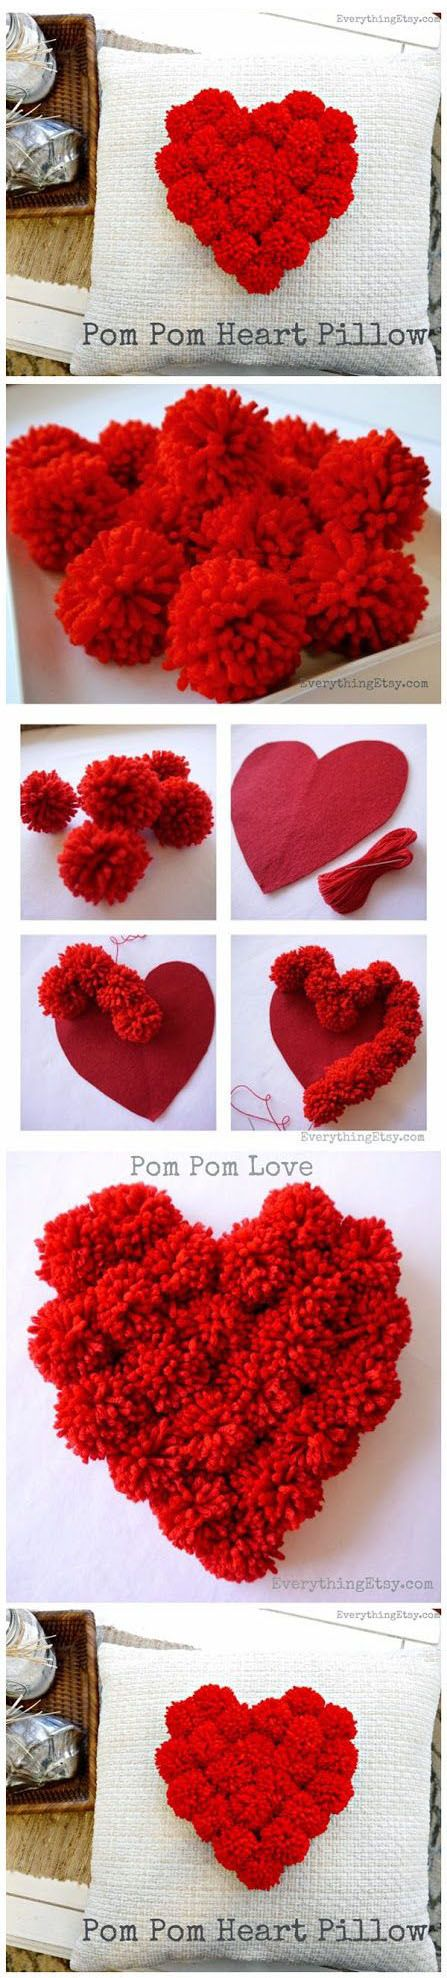 DIY Pom Pom Heart Pillow Pictures, Photos, and Images for Facebook, Tumblr, Pinterest, and Twitter